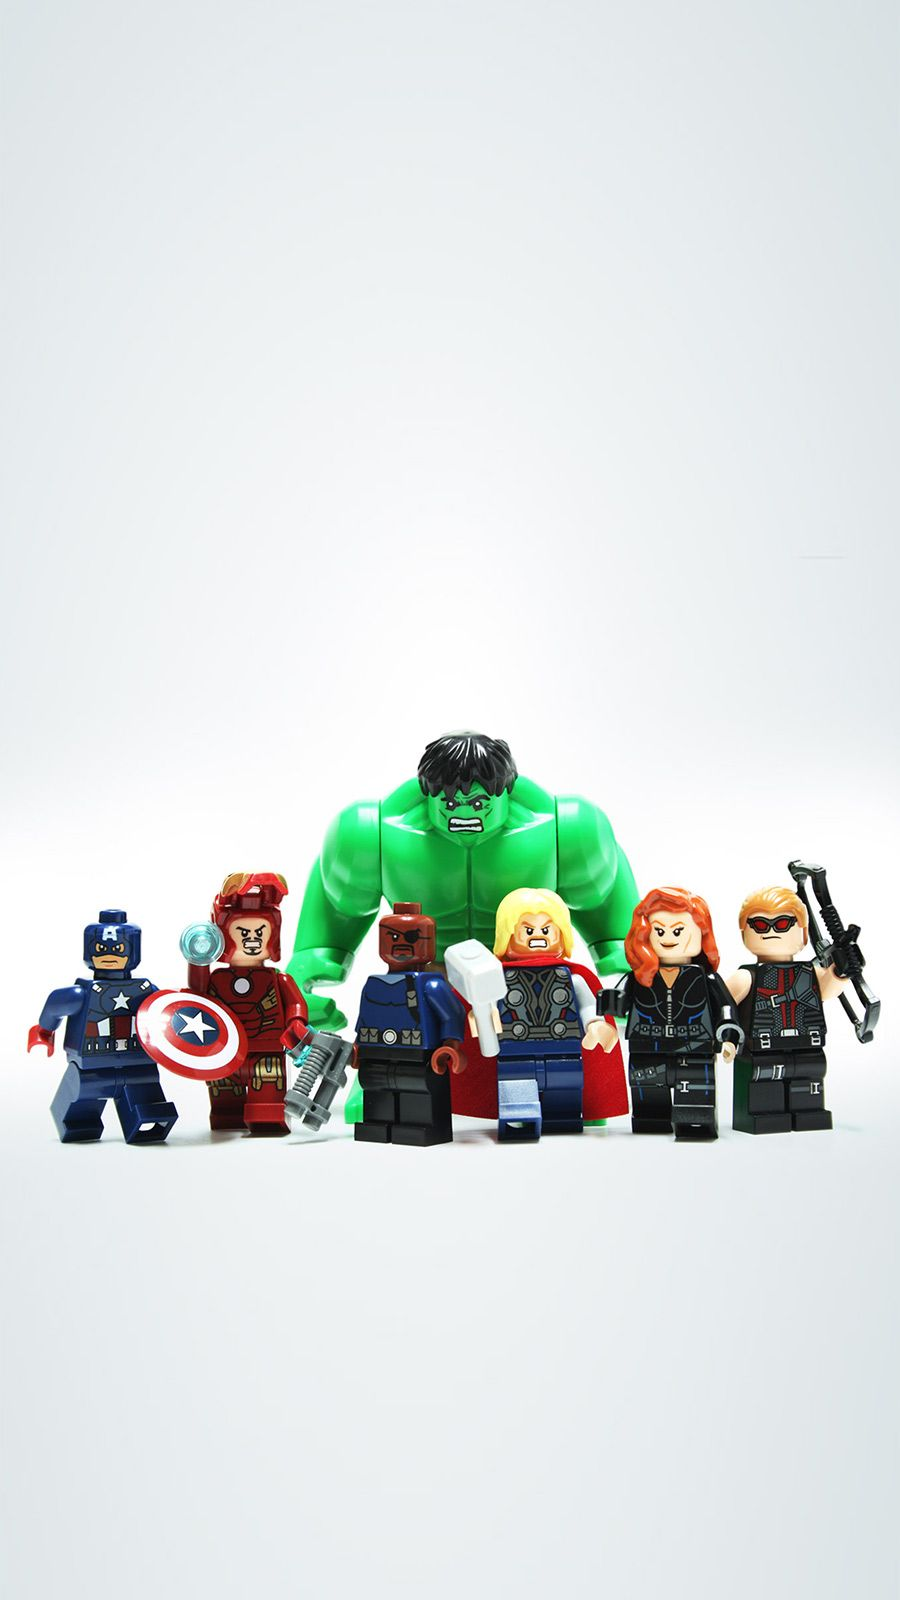 The avengers iphone wallpaper hd google search freakin legos the avengers iphone wallpaper hd google search voltagebd Image collections